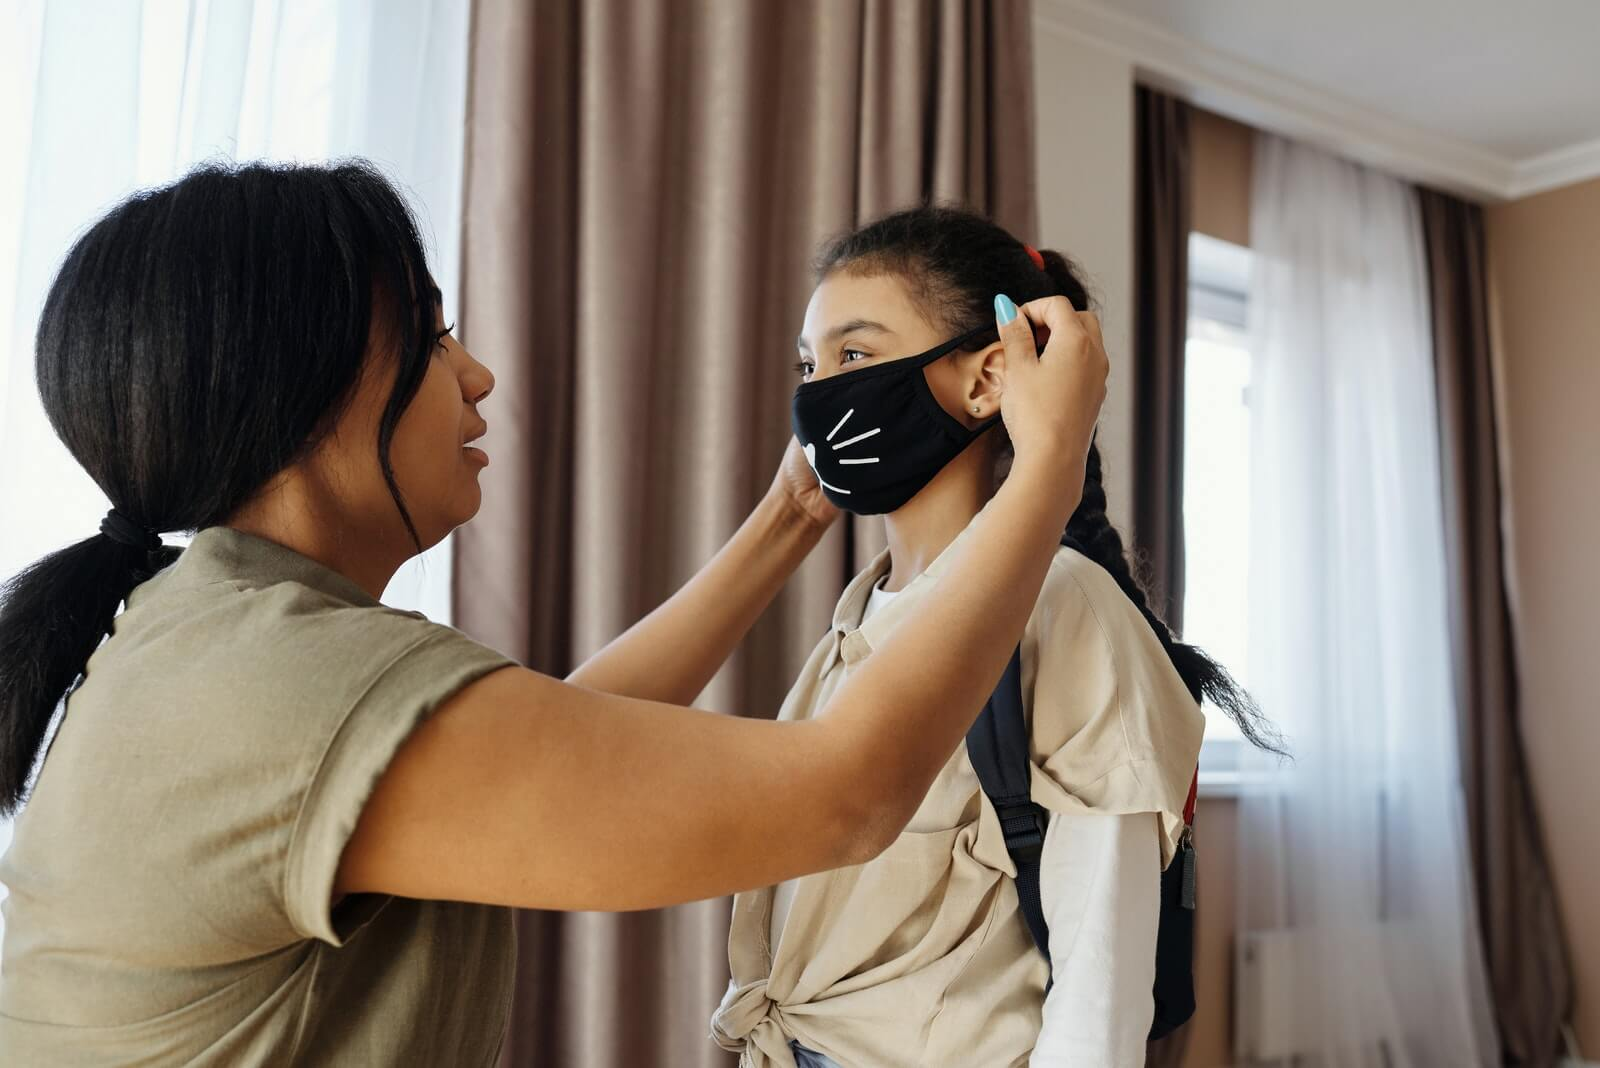 A woman helps her daughter put on a face mask during the COVID-19 pandemic